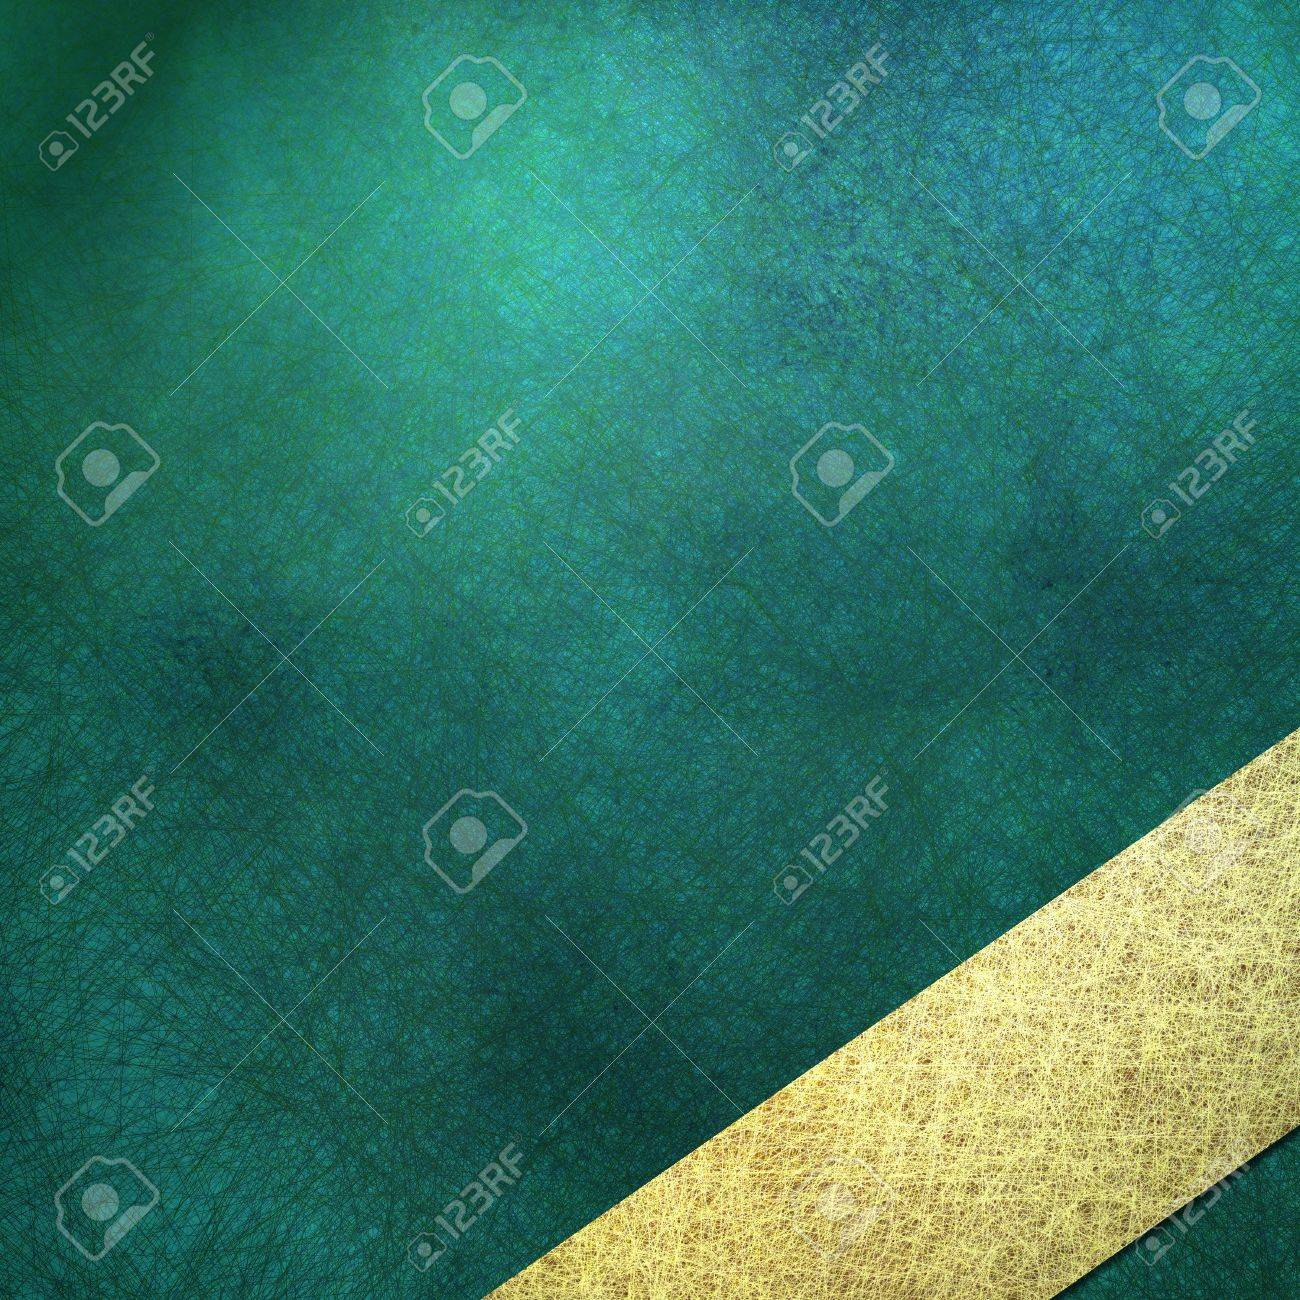 teal blue background, sign, or cover, with soft lighting, faint grunge scratch texture and shading, angled light gold stripe layout design Stock Photo - 13002341